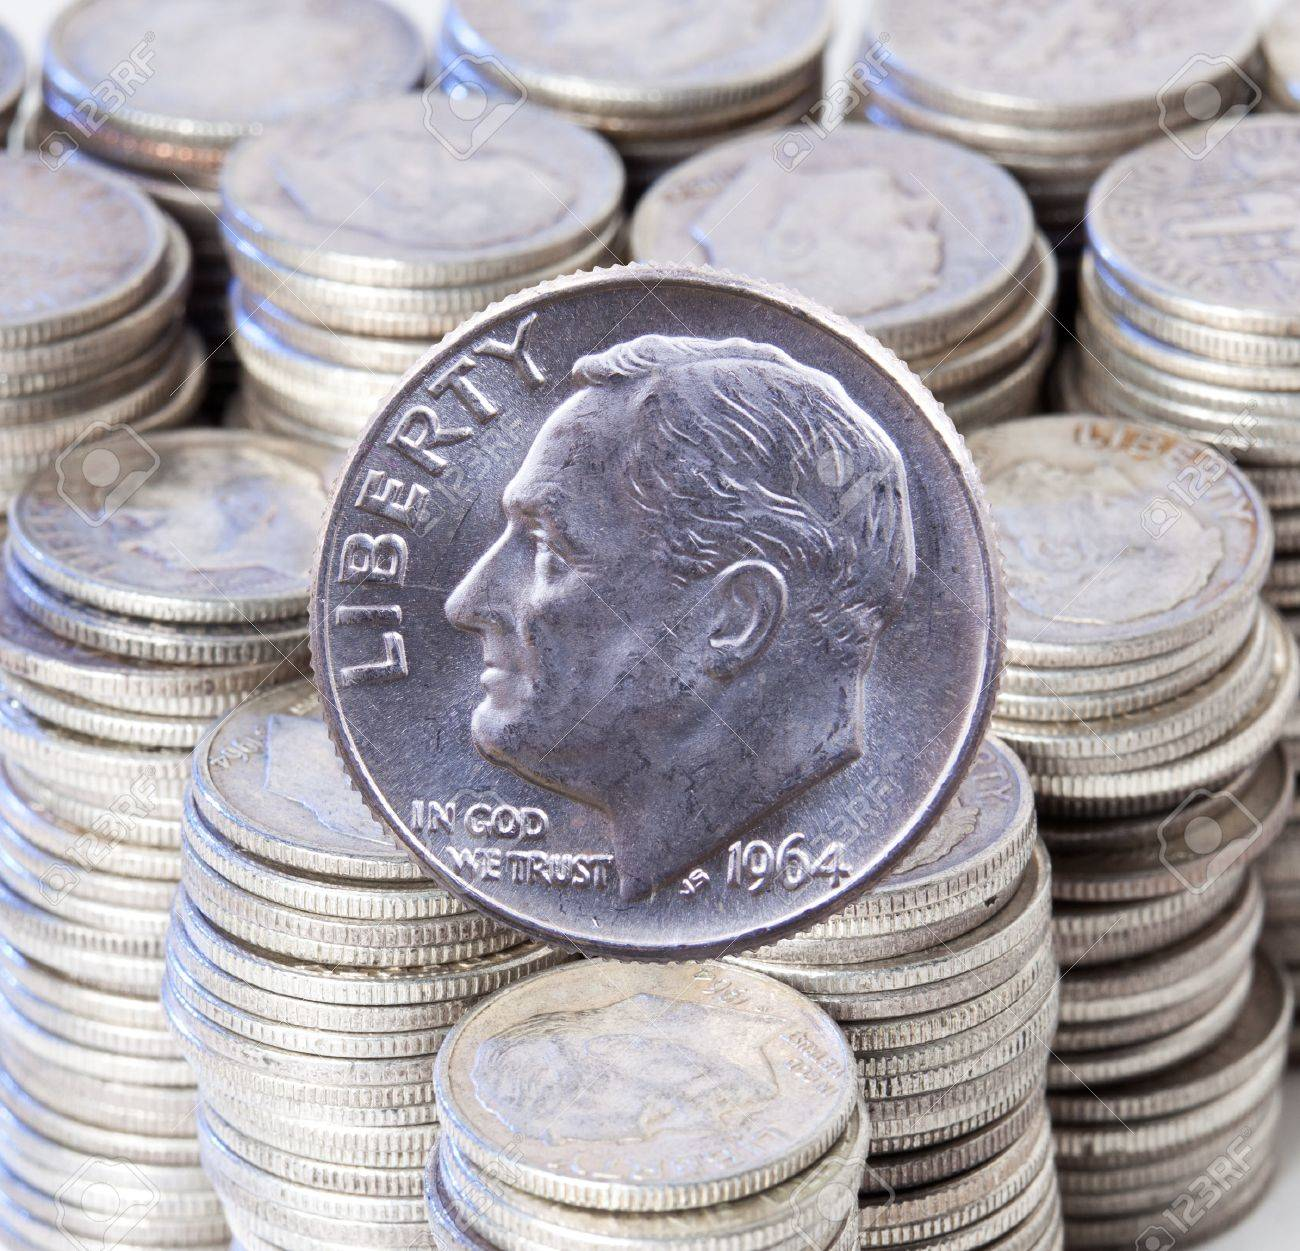 Pre 1964 dimes were 90% pure silver and are collectible. A good example of a Roosevelt dime against a stacks of similar silver dimes Stock Photo - 9227138